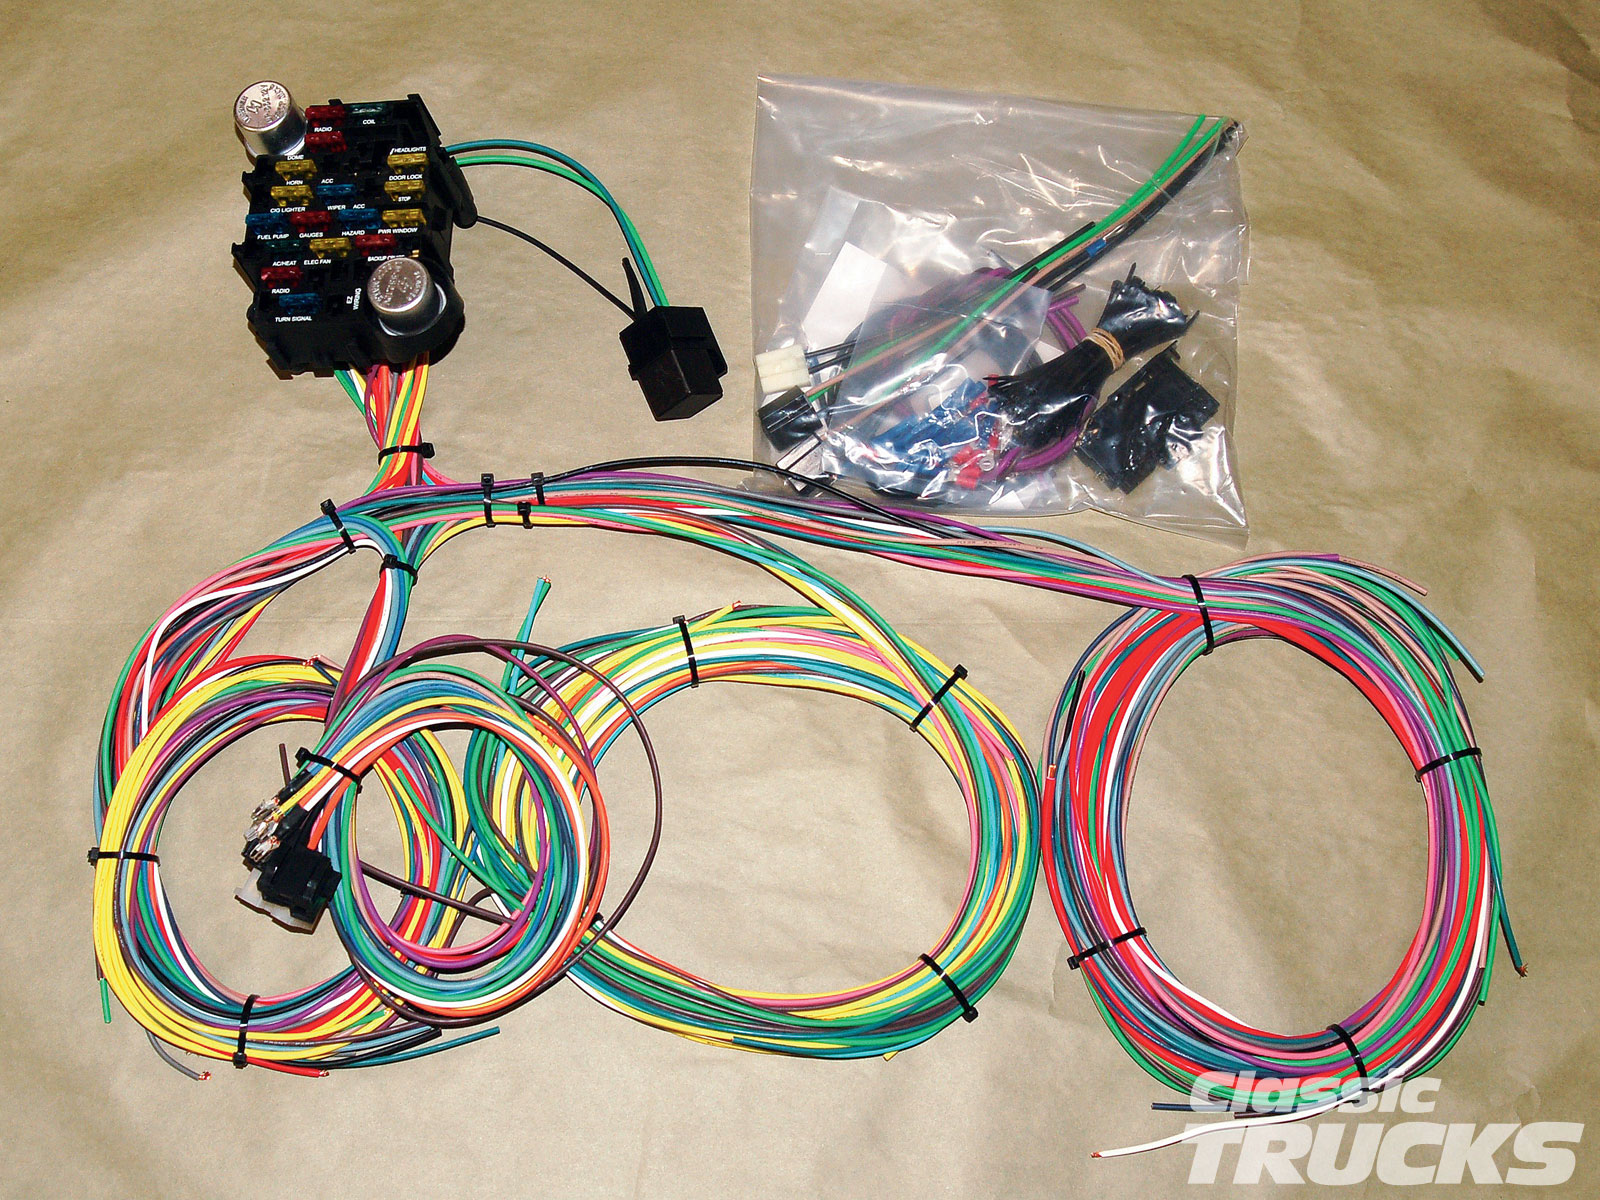 1010clt 02 o aftermarket wiring harness install kit?resize\\\=665%2C499 painless wiring harness australia tamahuproject org universal wiring harness australia at readyjetset.co